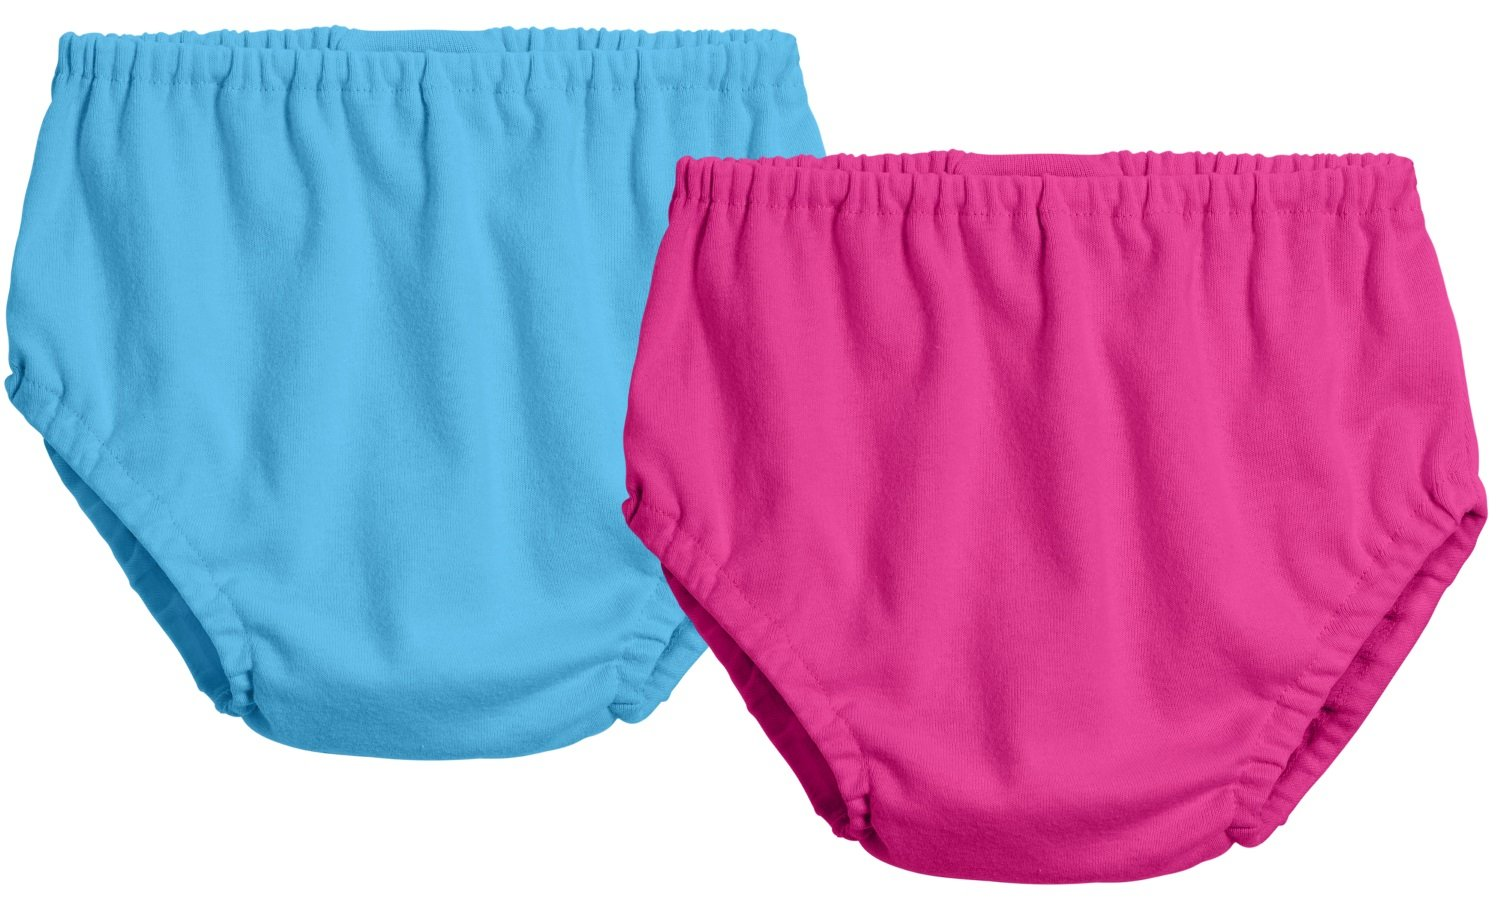 City Threads 2-Pack Baby Girls' and Baby Boys' Unisex Diaper Covers Bloomers Soft Cotton, Turquoise/Hot Pink, 12/18 m